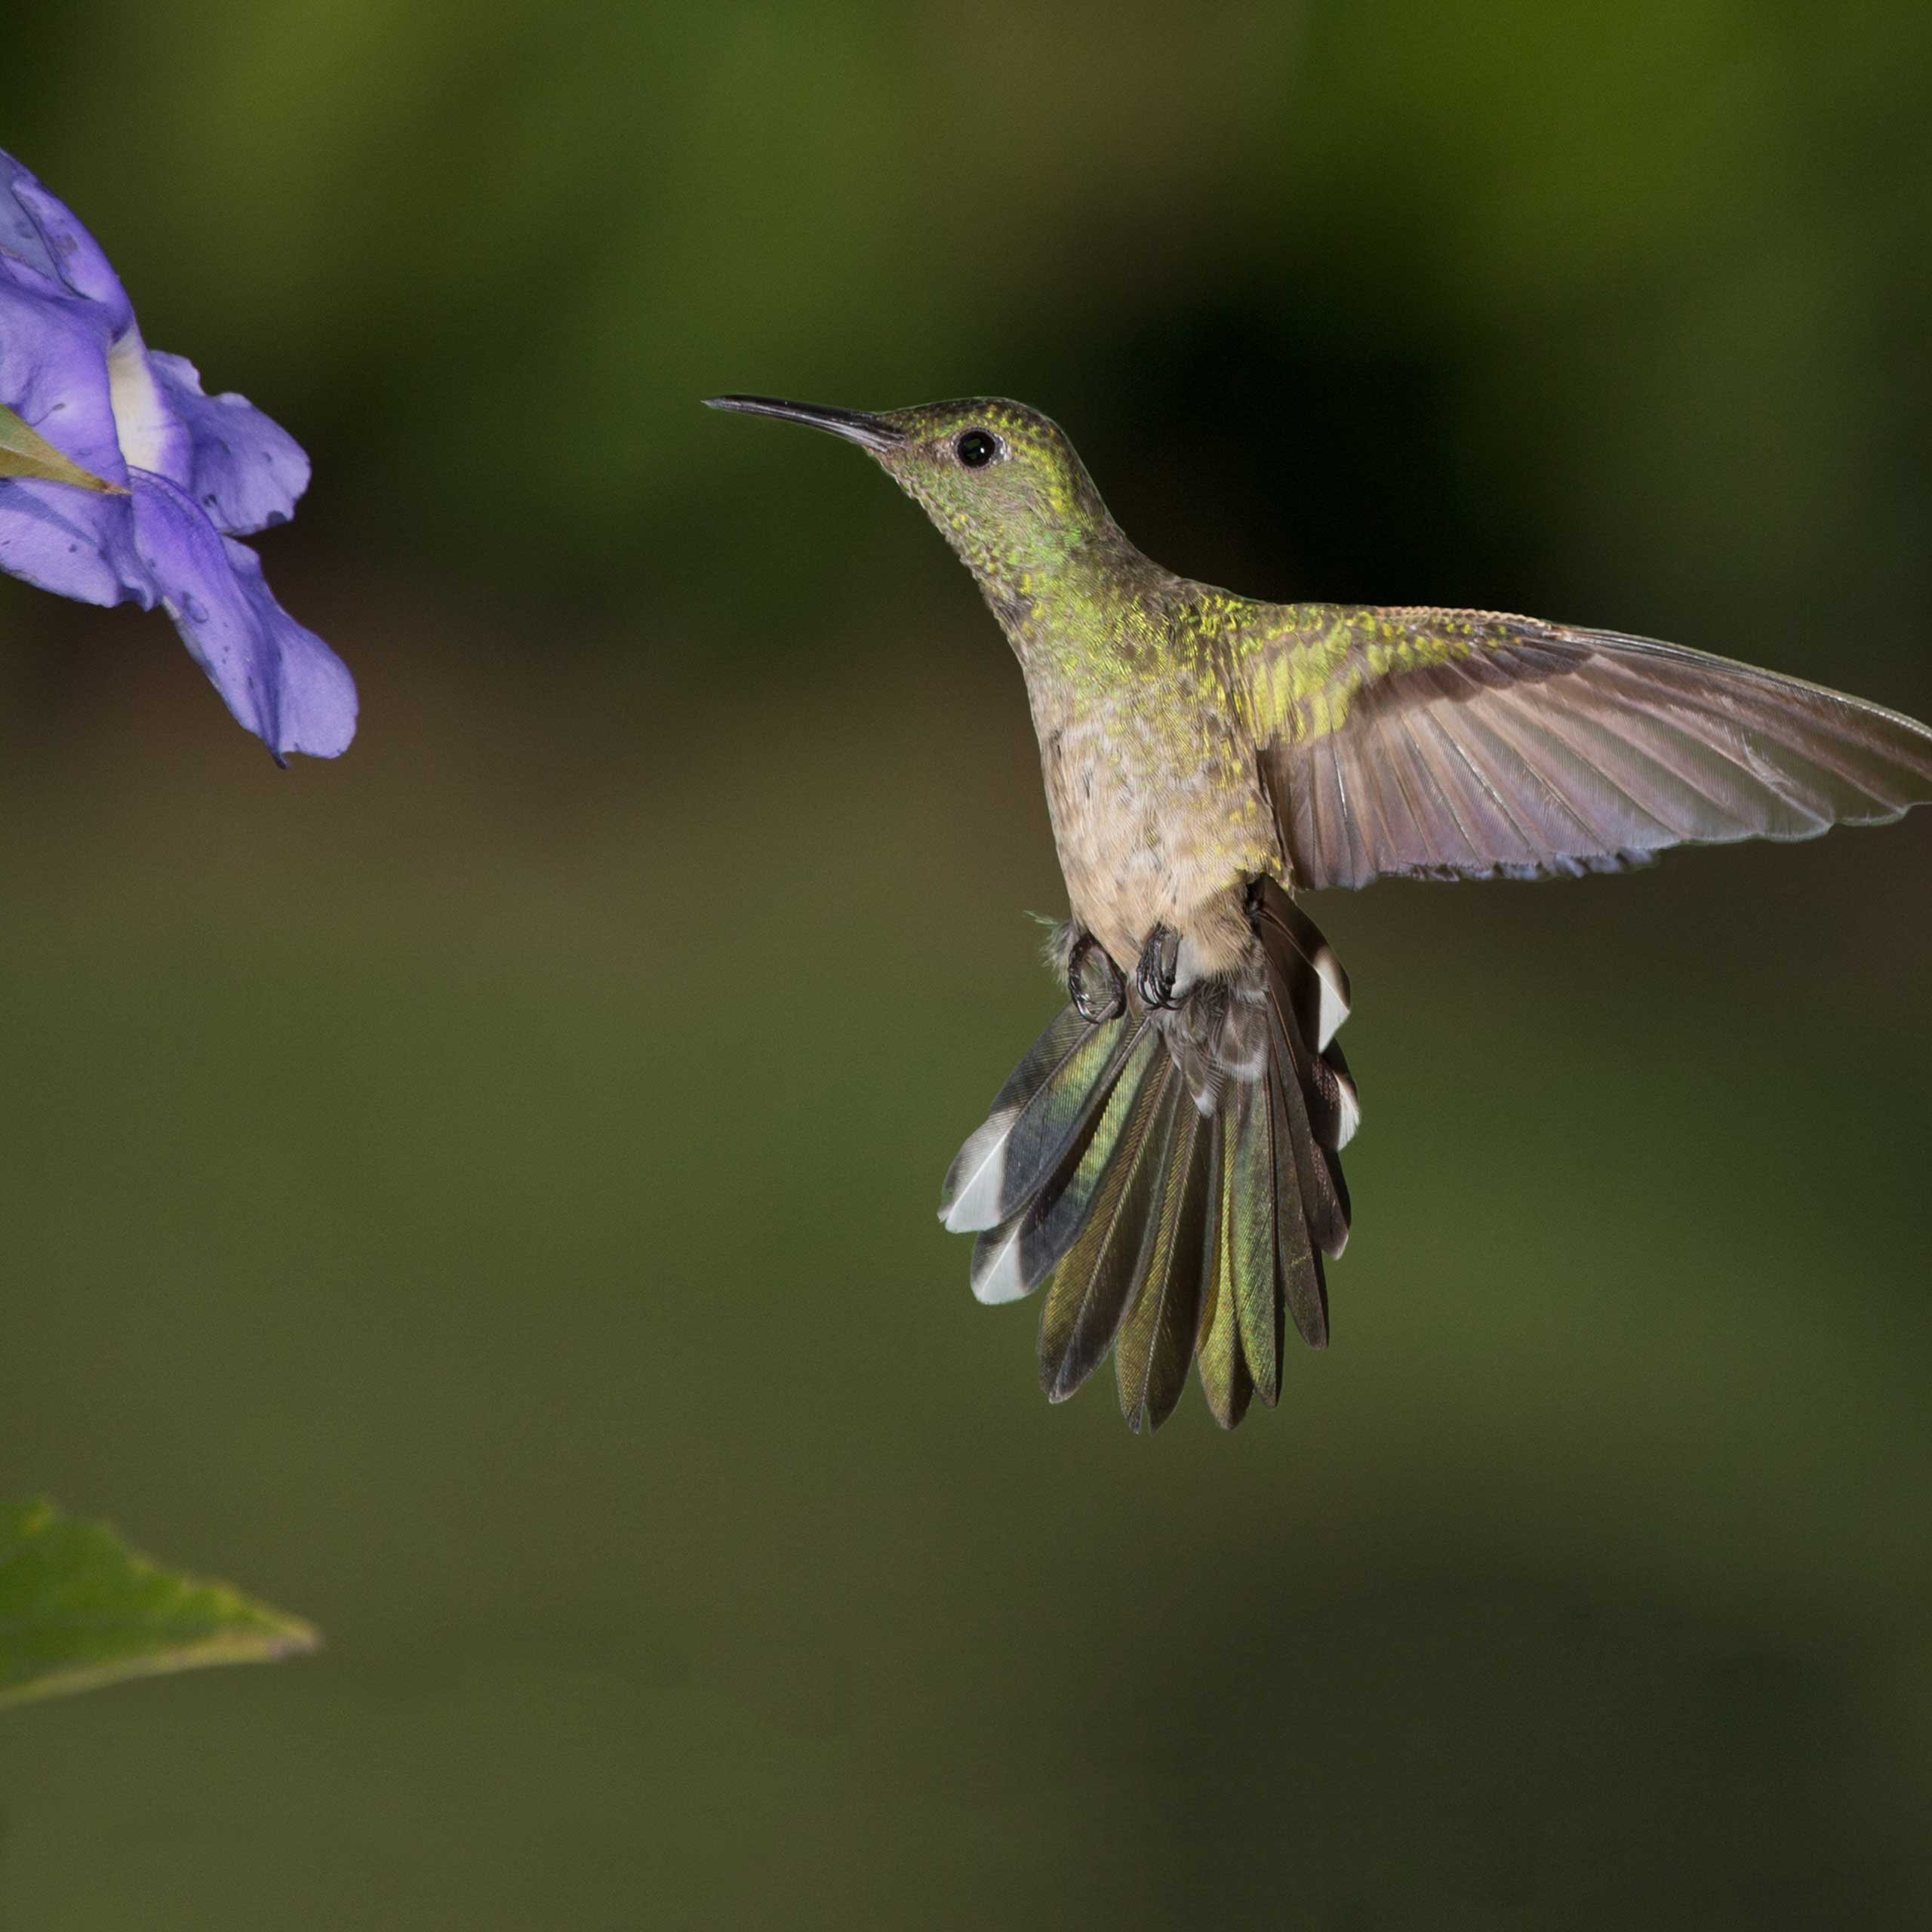 The hummingbird is a favorite of many Arizona residents. If he is one of yours, you won't want to miss the three-day Sedona Hummingbird Festival starting July 31st.